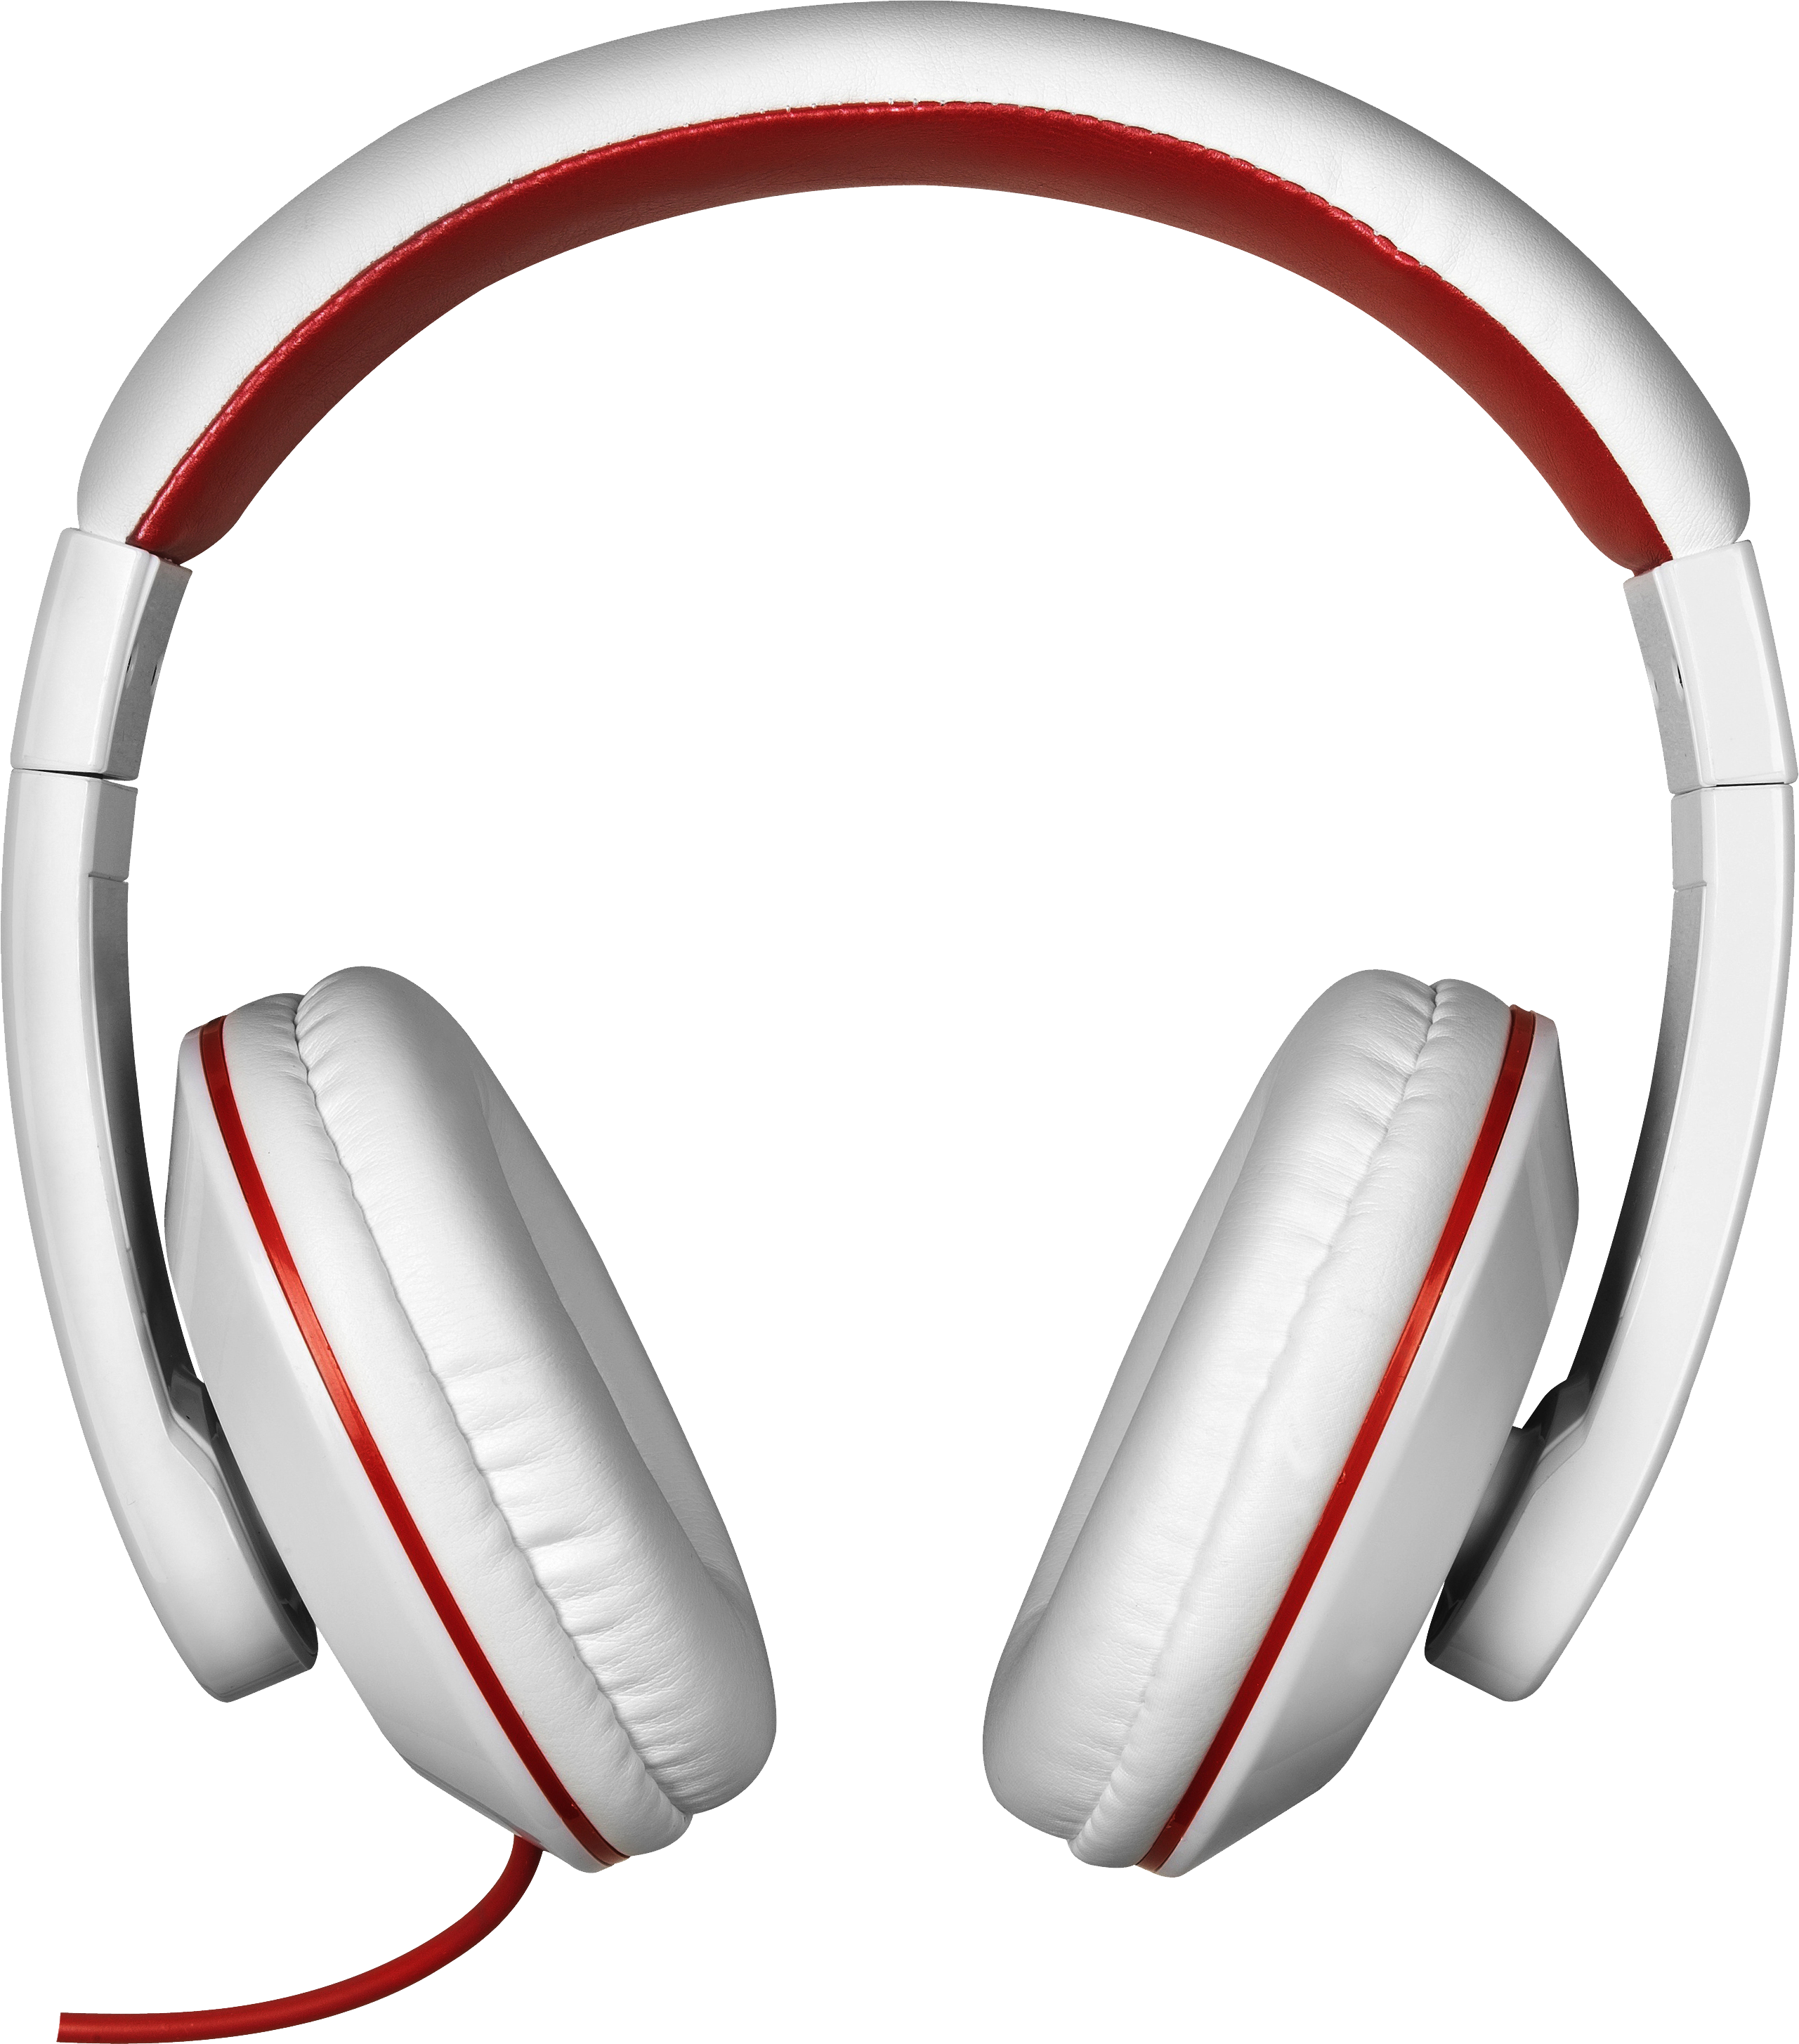 Headphones clipart person. Png images free download